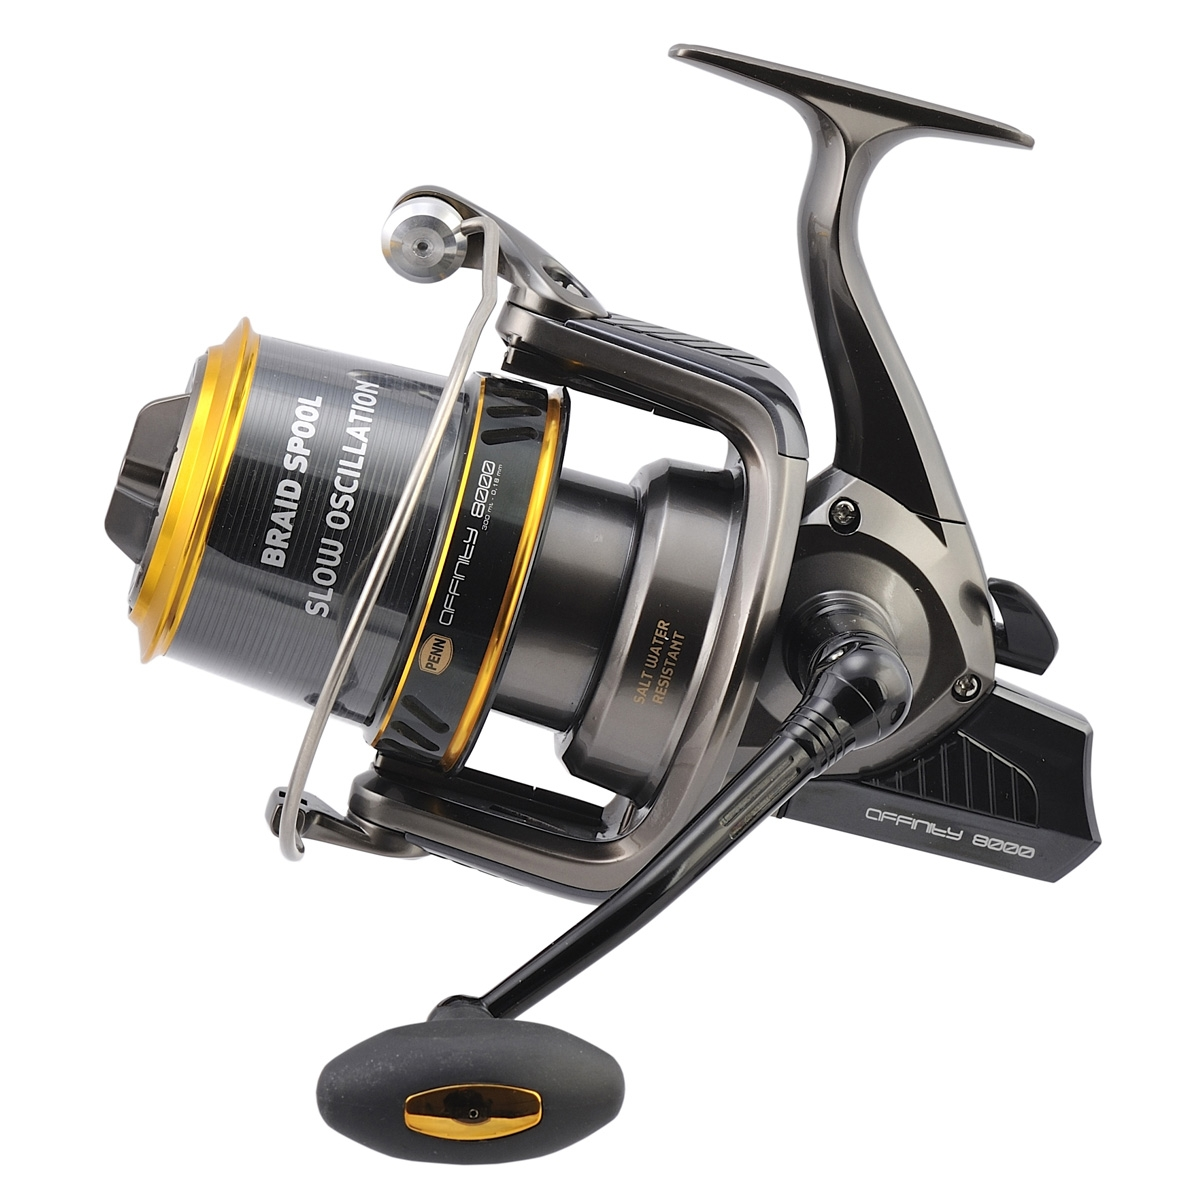 Penn affinity lc 8000 surf casting reel for Surf fishing reels